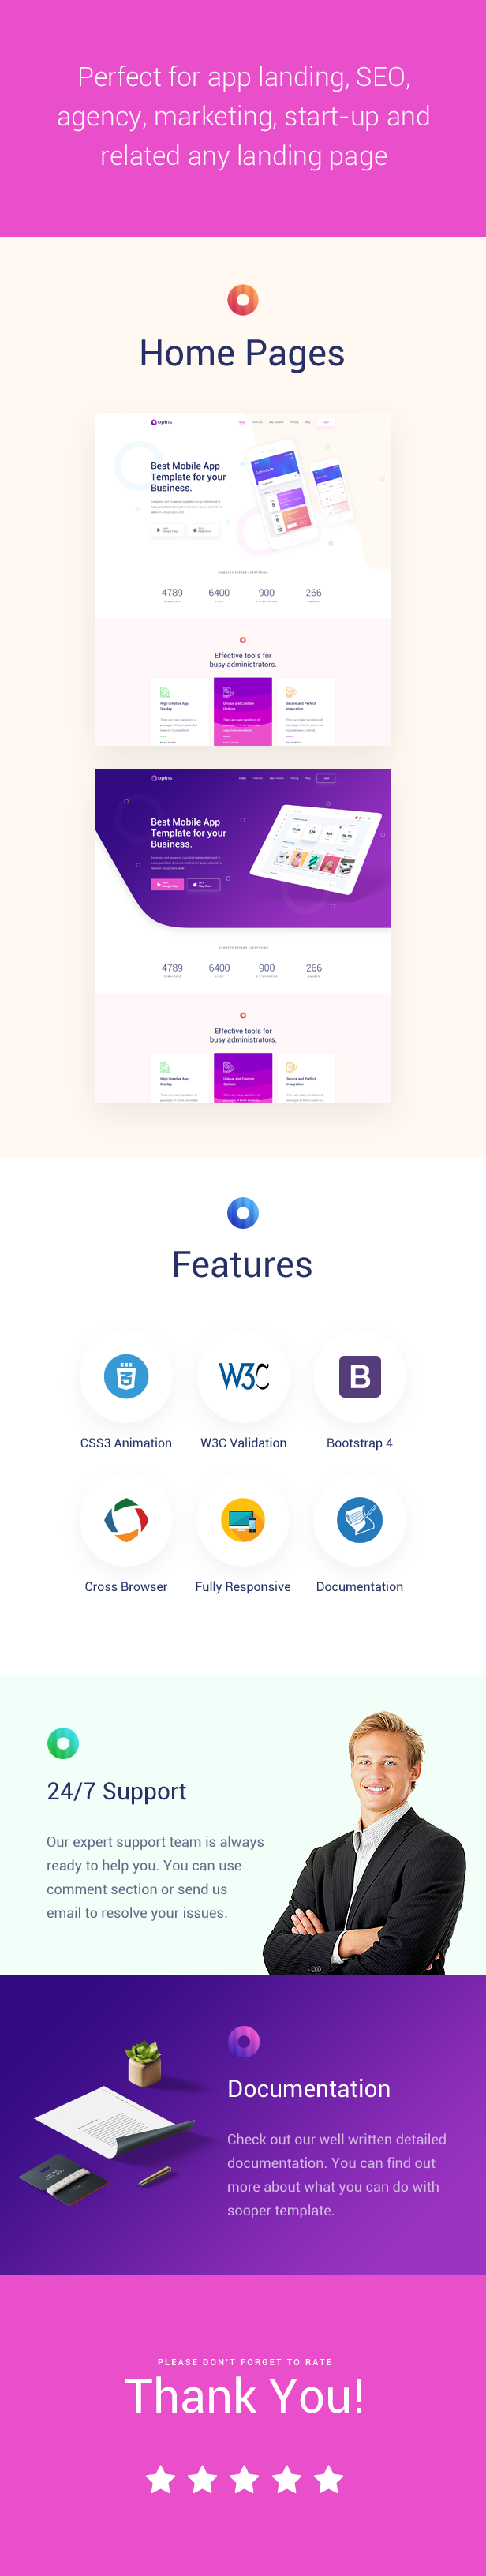 Opins - Creative App Landing Page HTML Template - 1